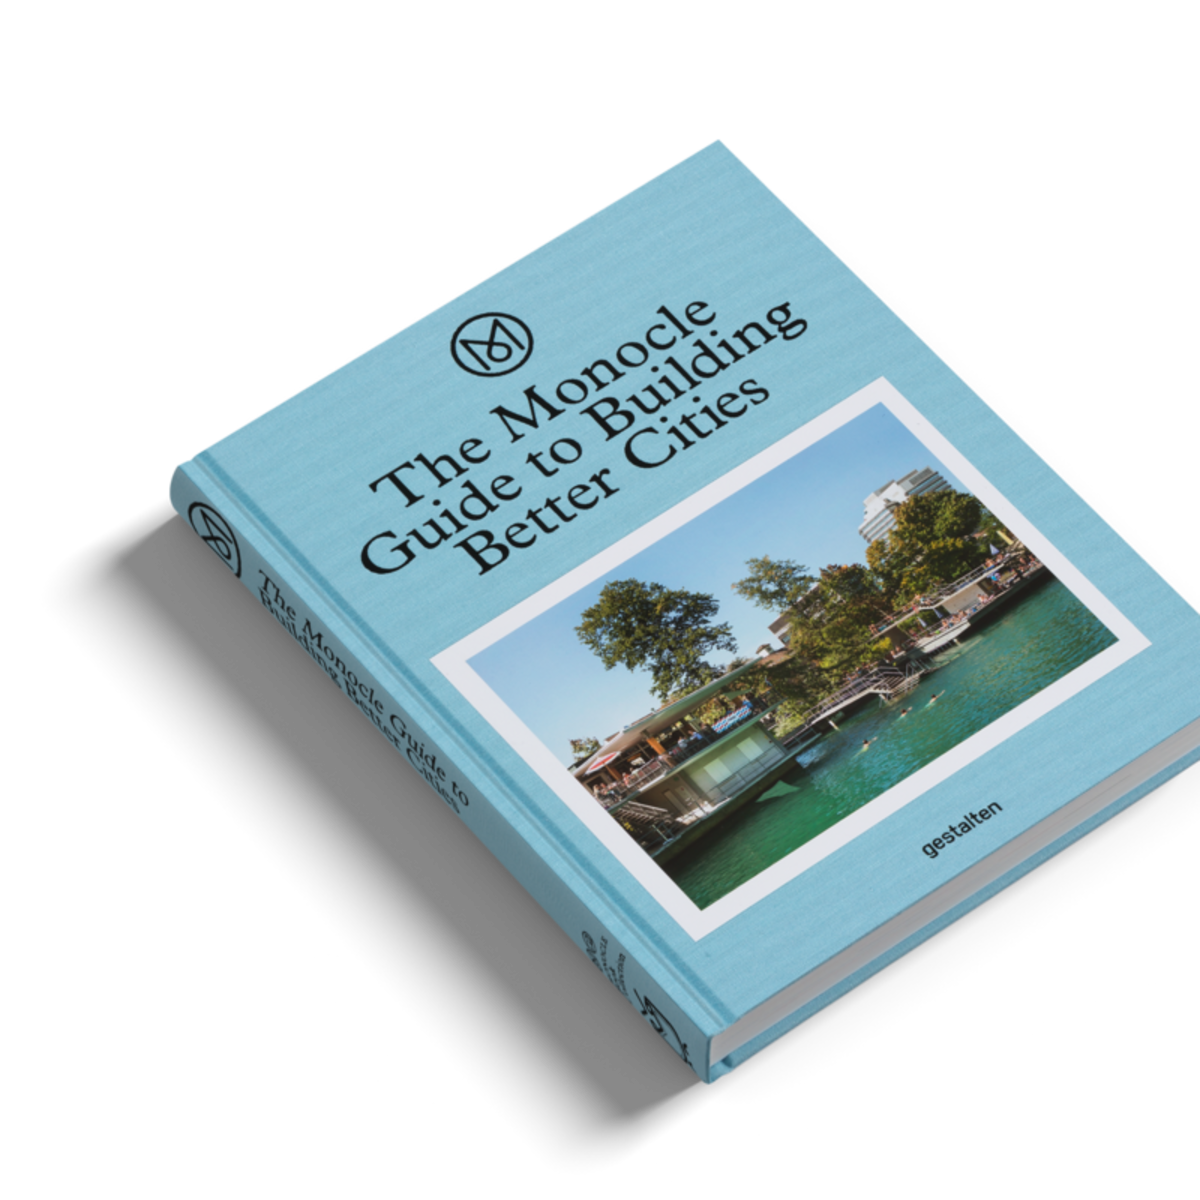 Gestalten The Monocle Guide To Building Better Cities Book Garmentory